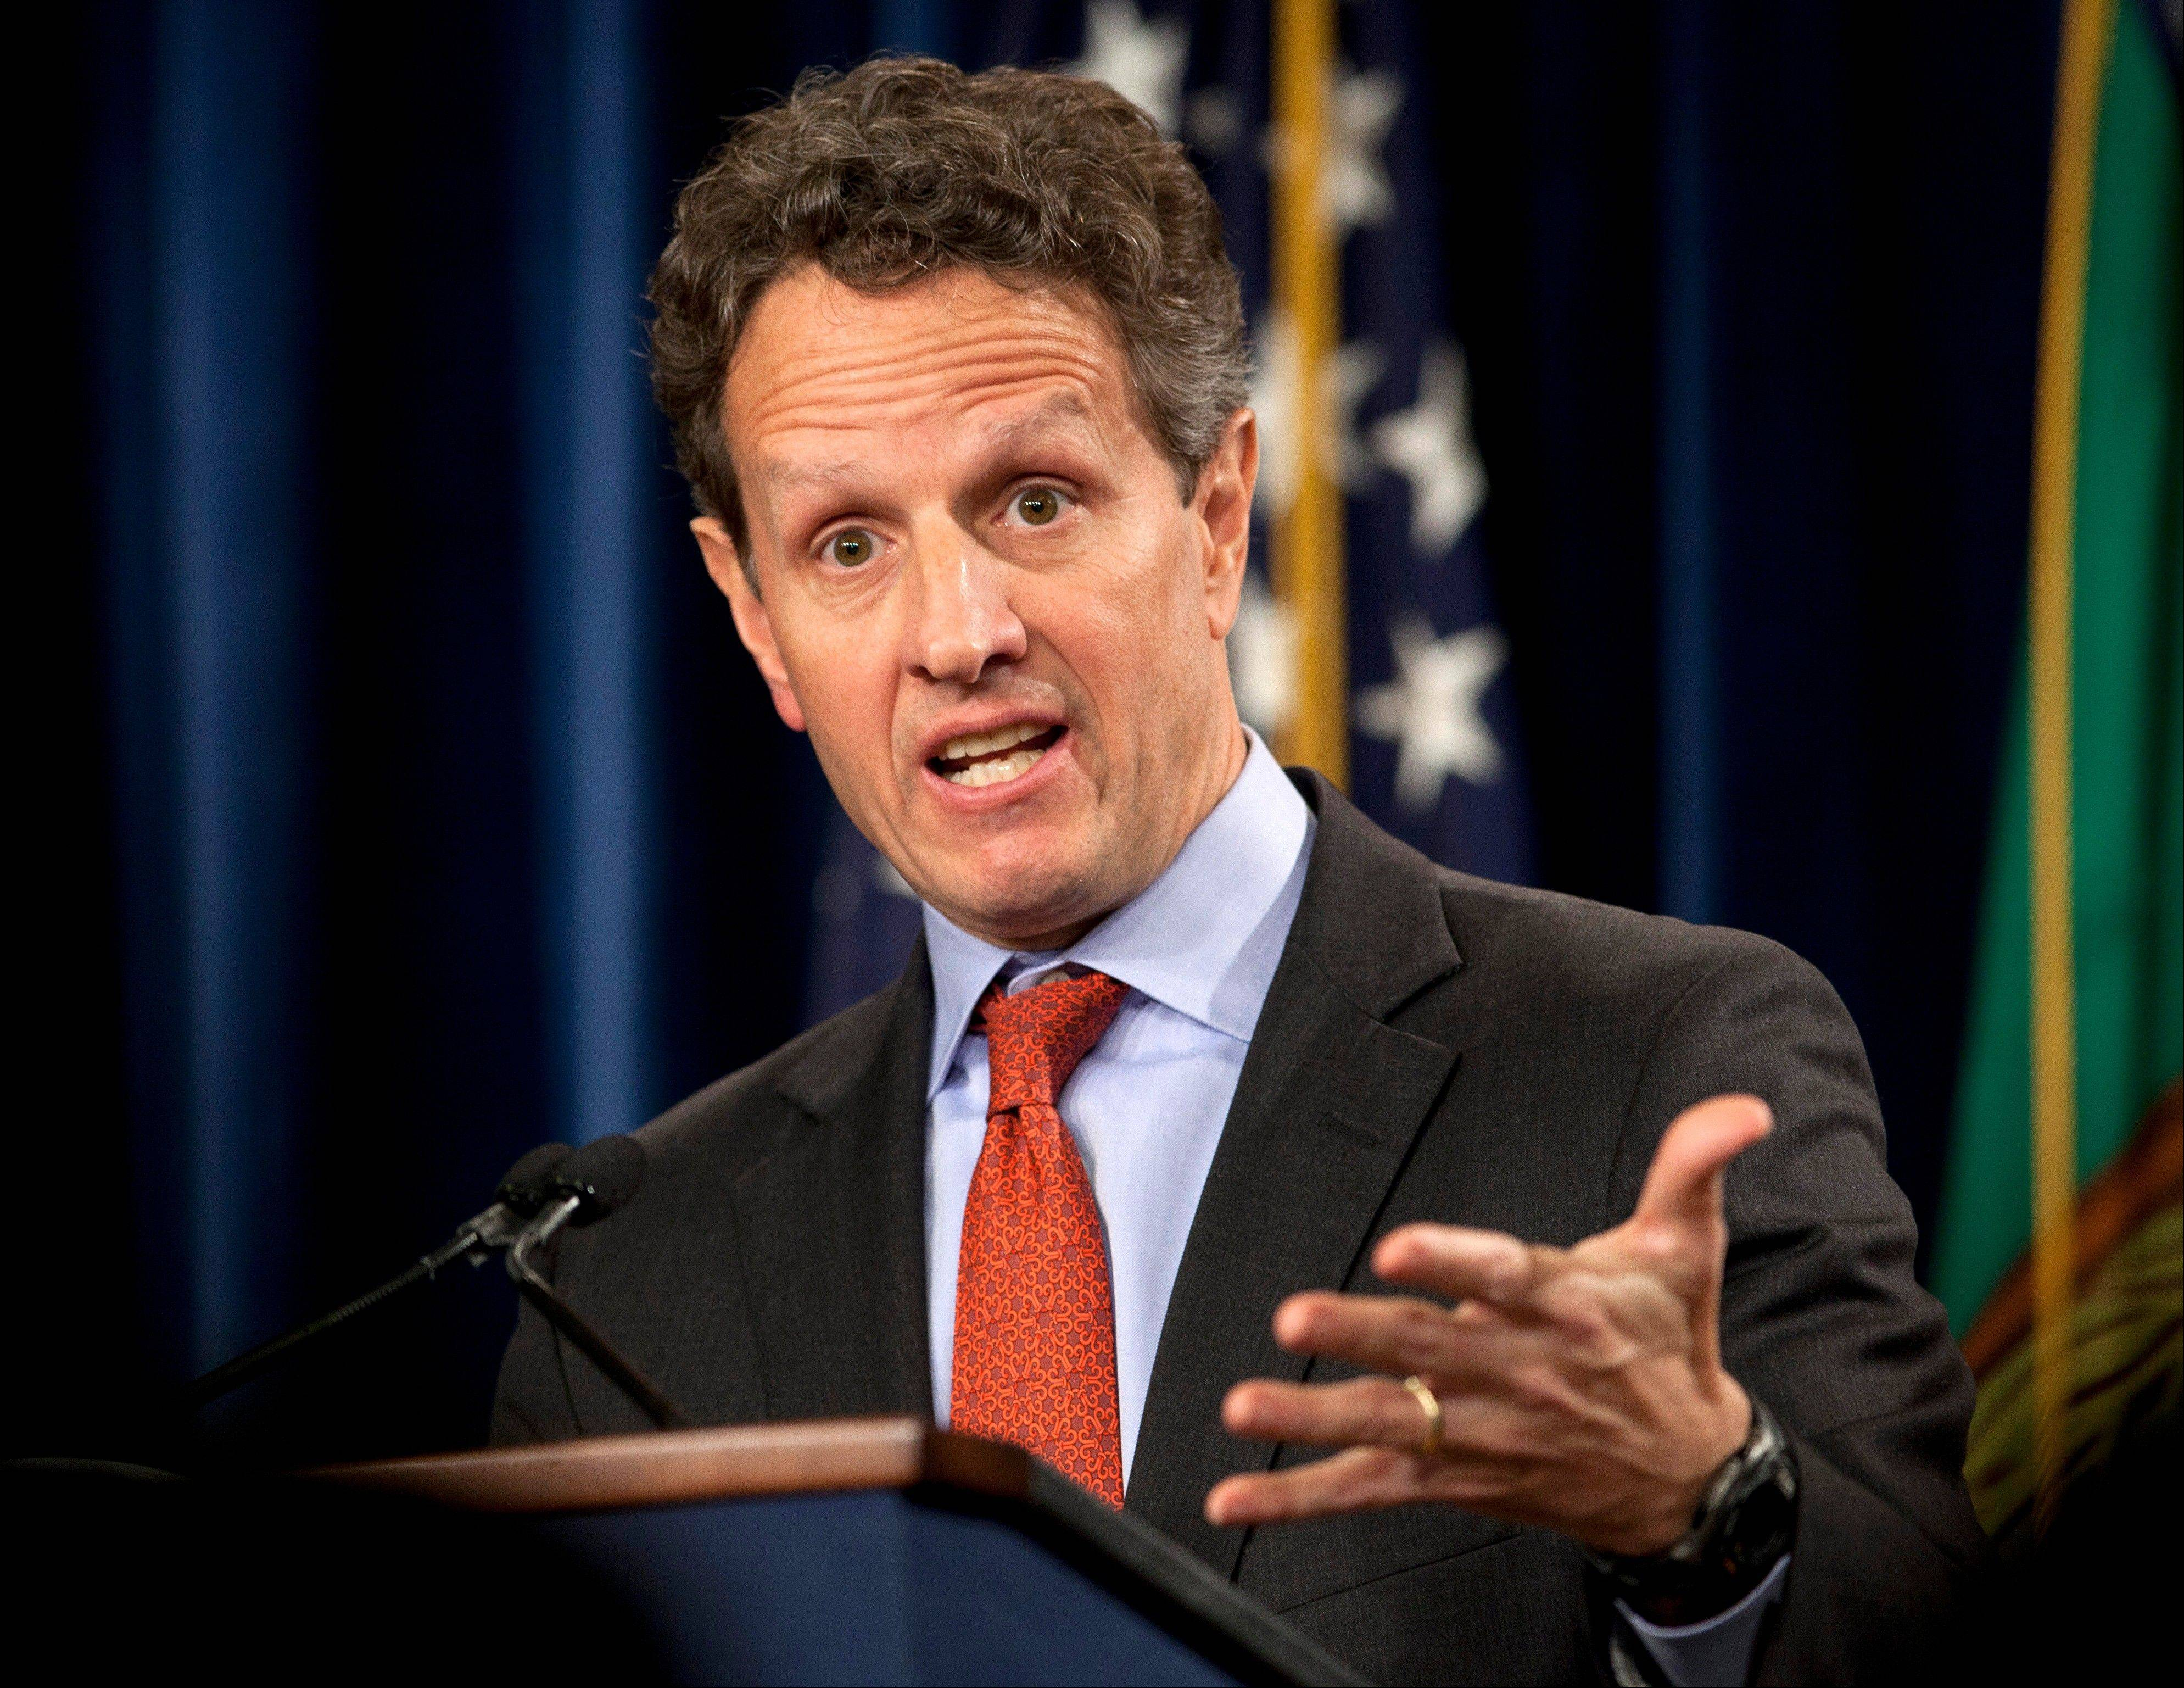 Associated Press/Feb. 2, 2012 Then-Treasury Secretary Timothy Geithner during a news conference at the Treasury Department in Washington.